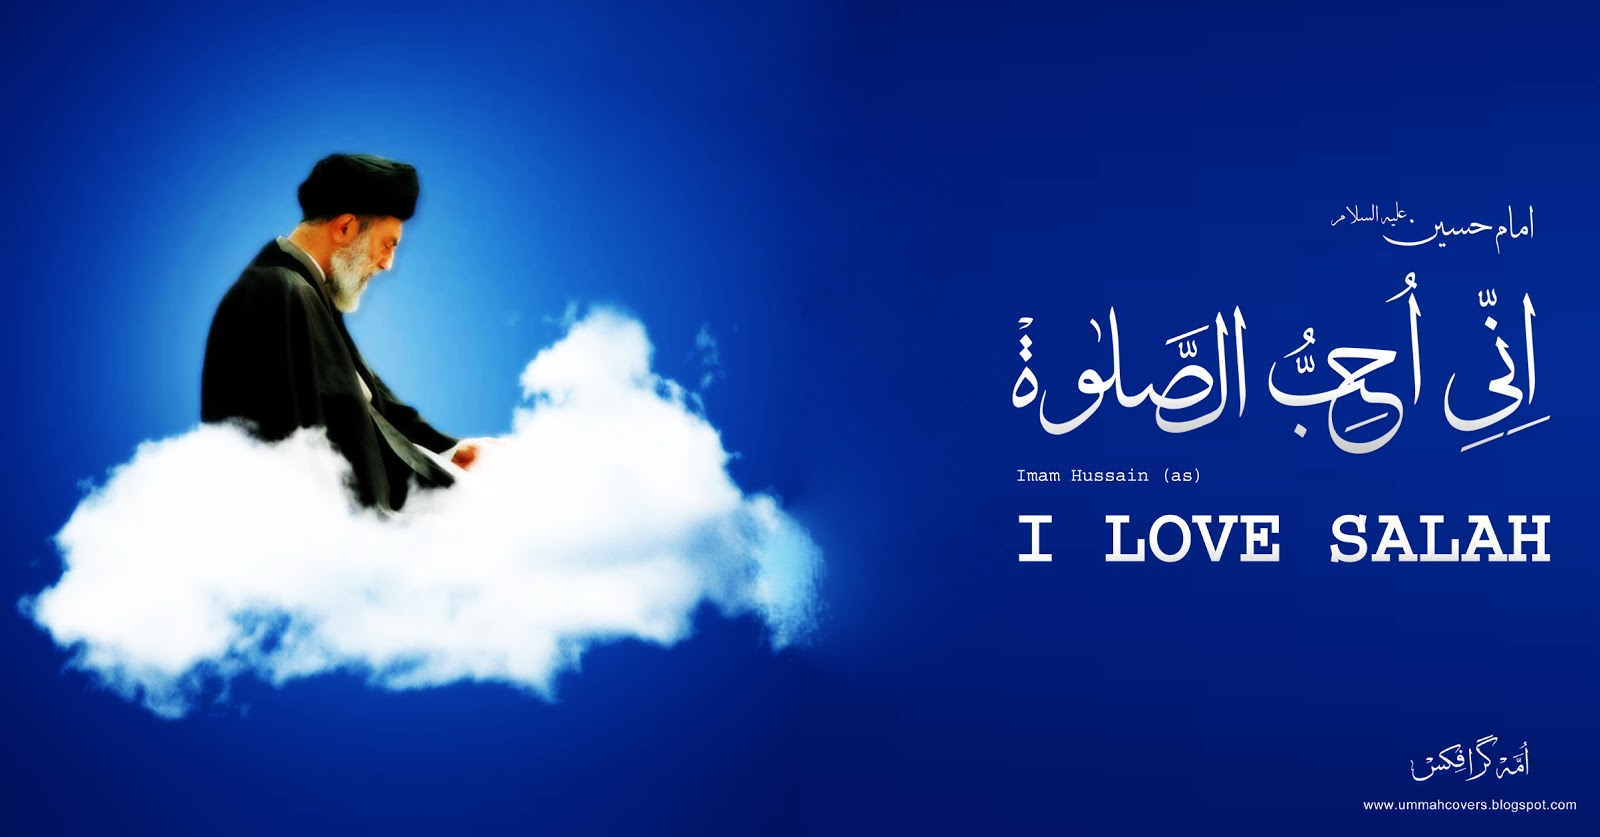 Love Wallpaper On Fb : UMMAH Graphics: I Love Salah ( Imam Hussain a.s ) Wallpaper + FB cover